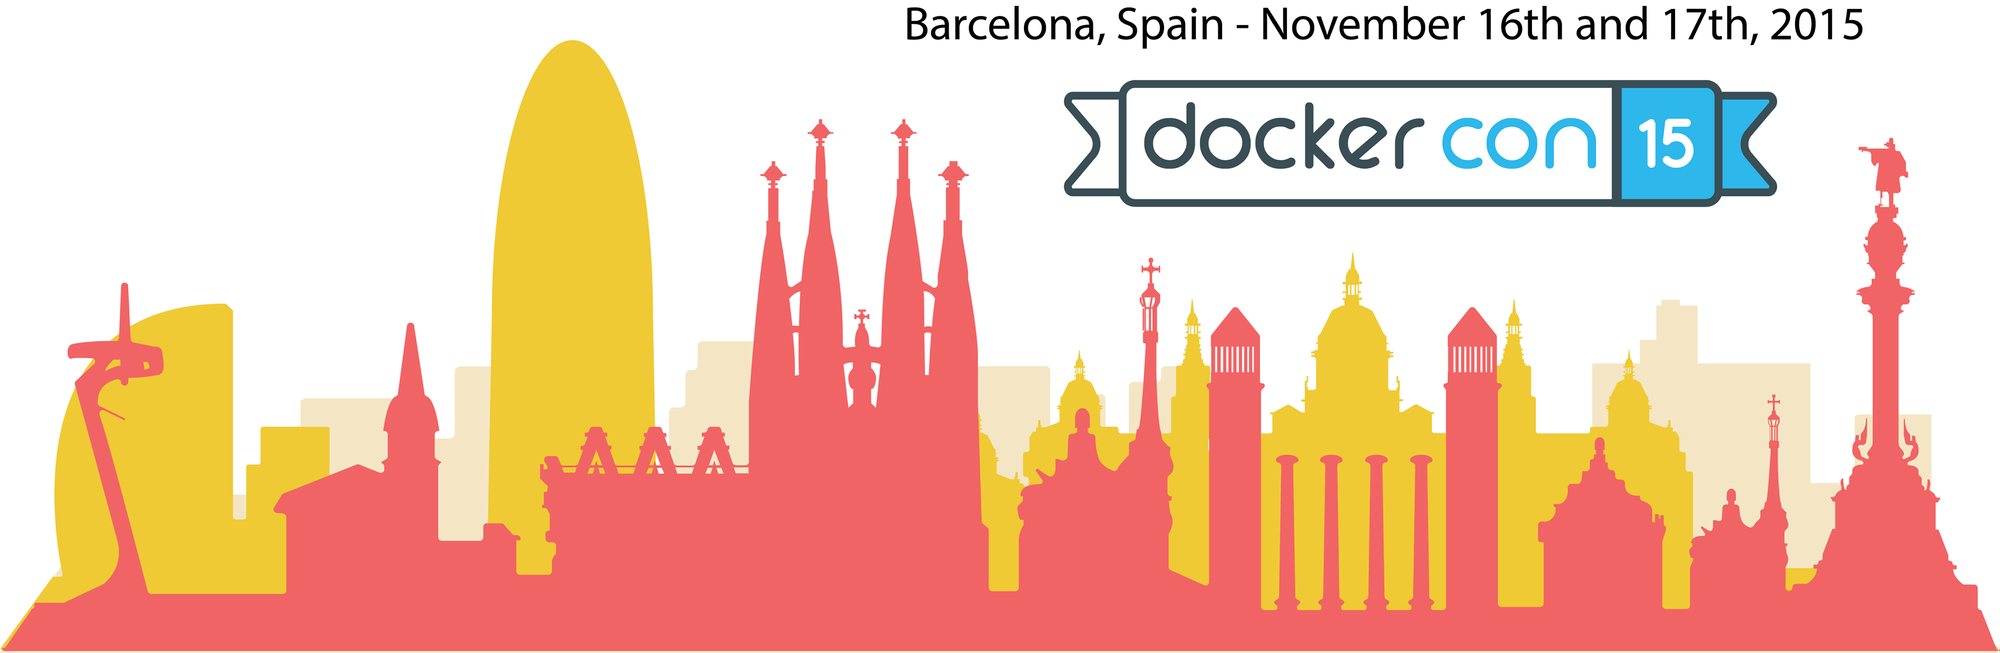 DockerCon Monitoring Presentation now available